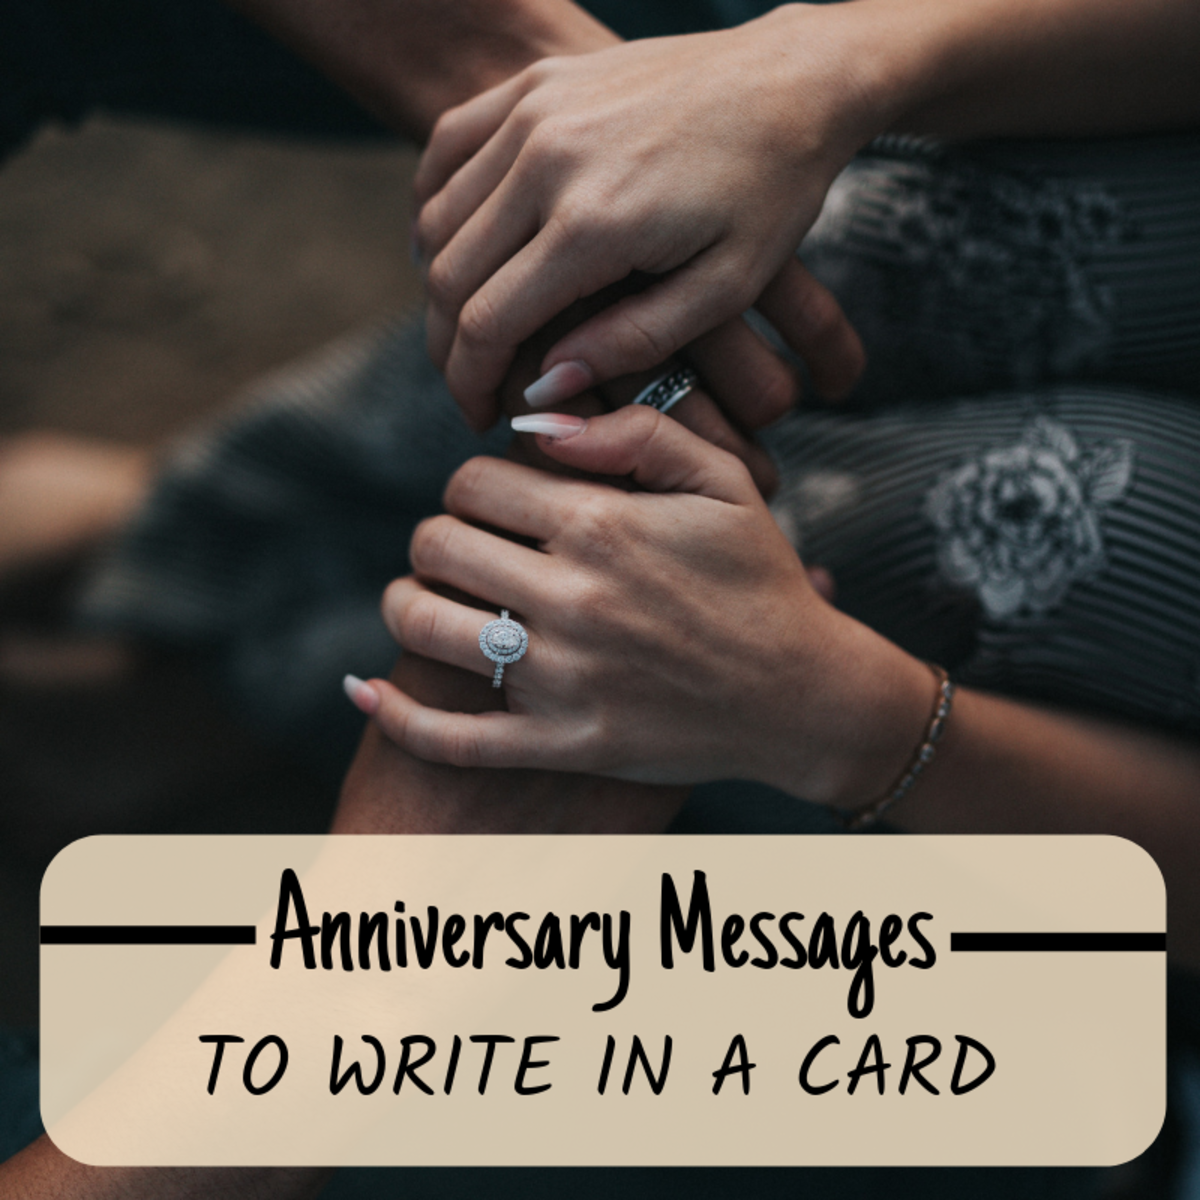 Every anniversary is an opportunity to remind your spouse or significant other how important they are in your life.